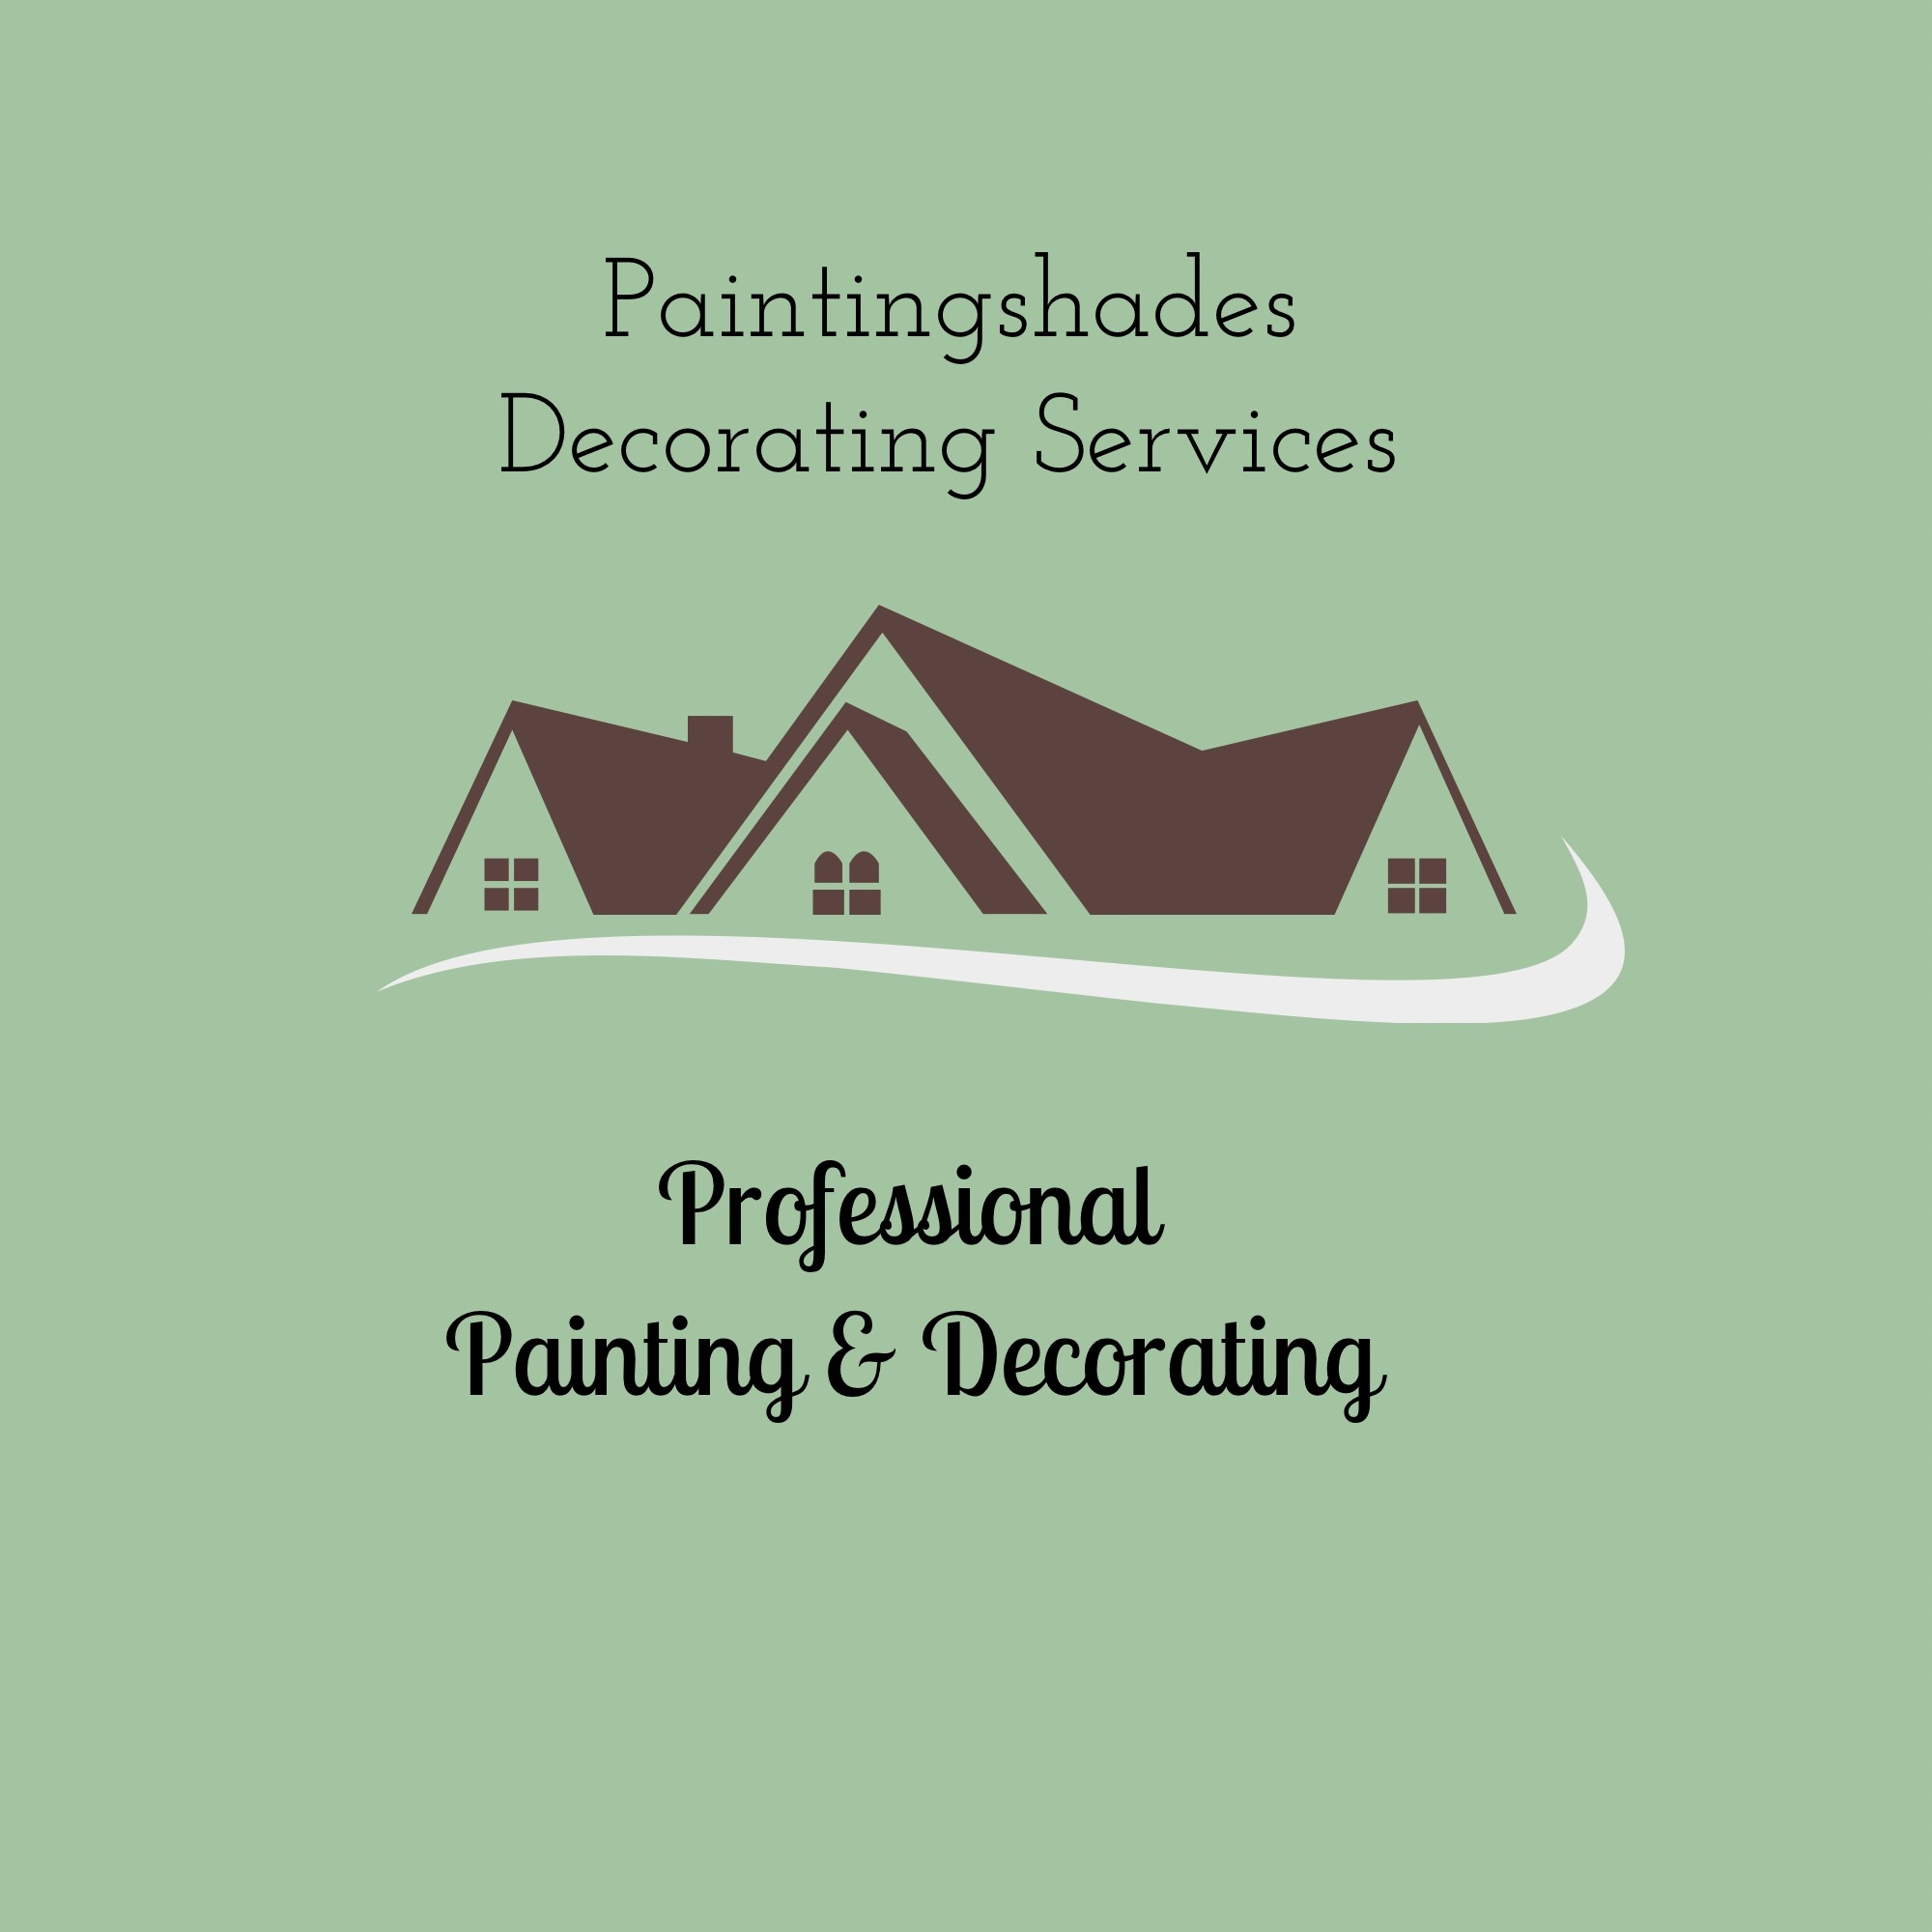 Paintingshades decorating services Verified Logo